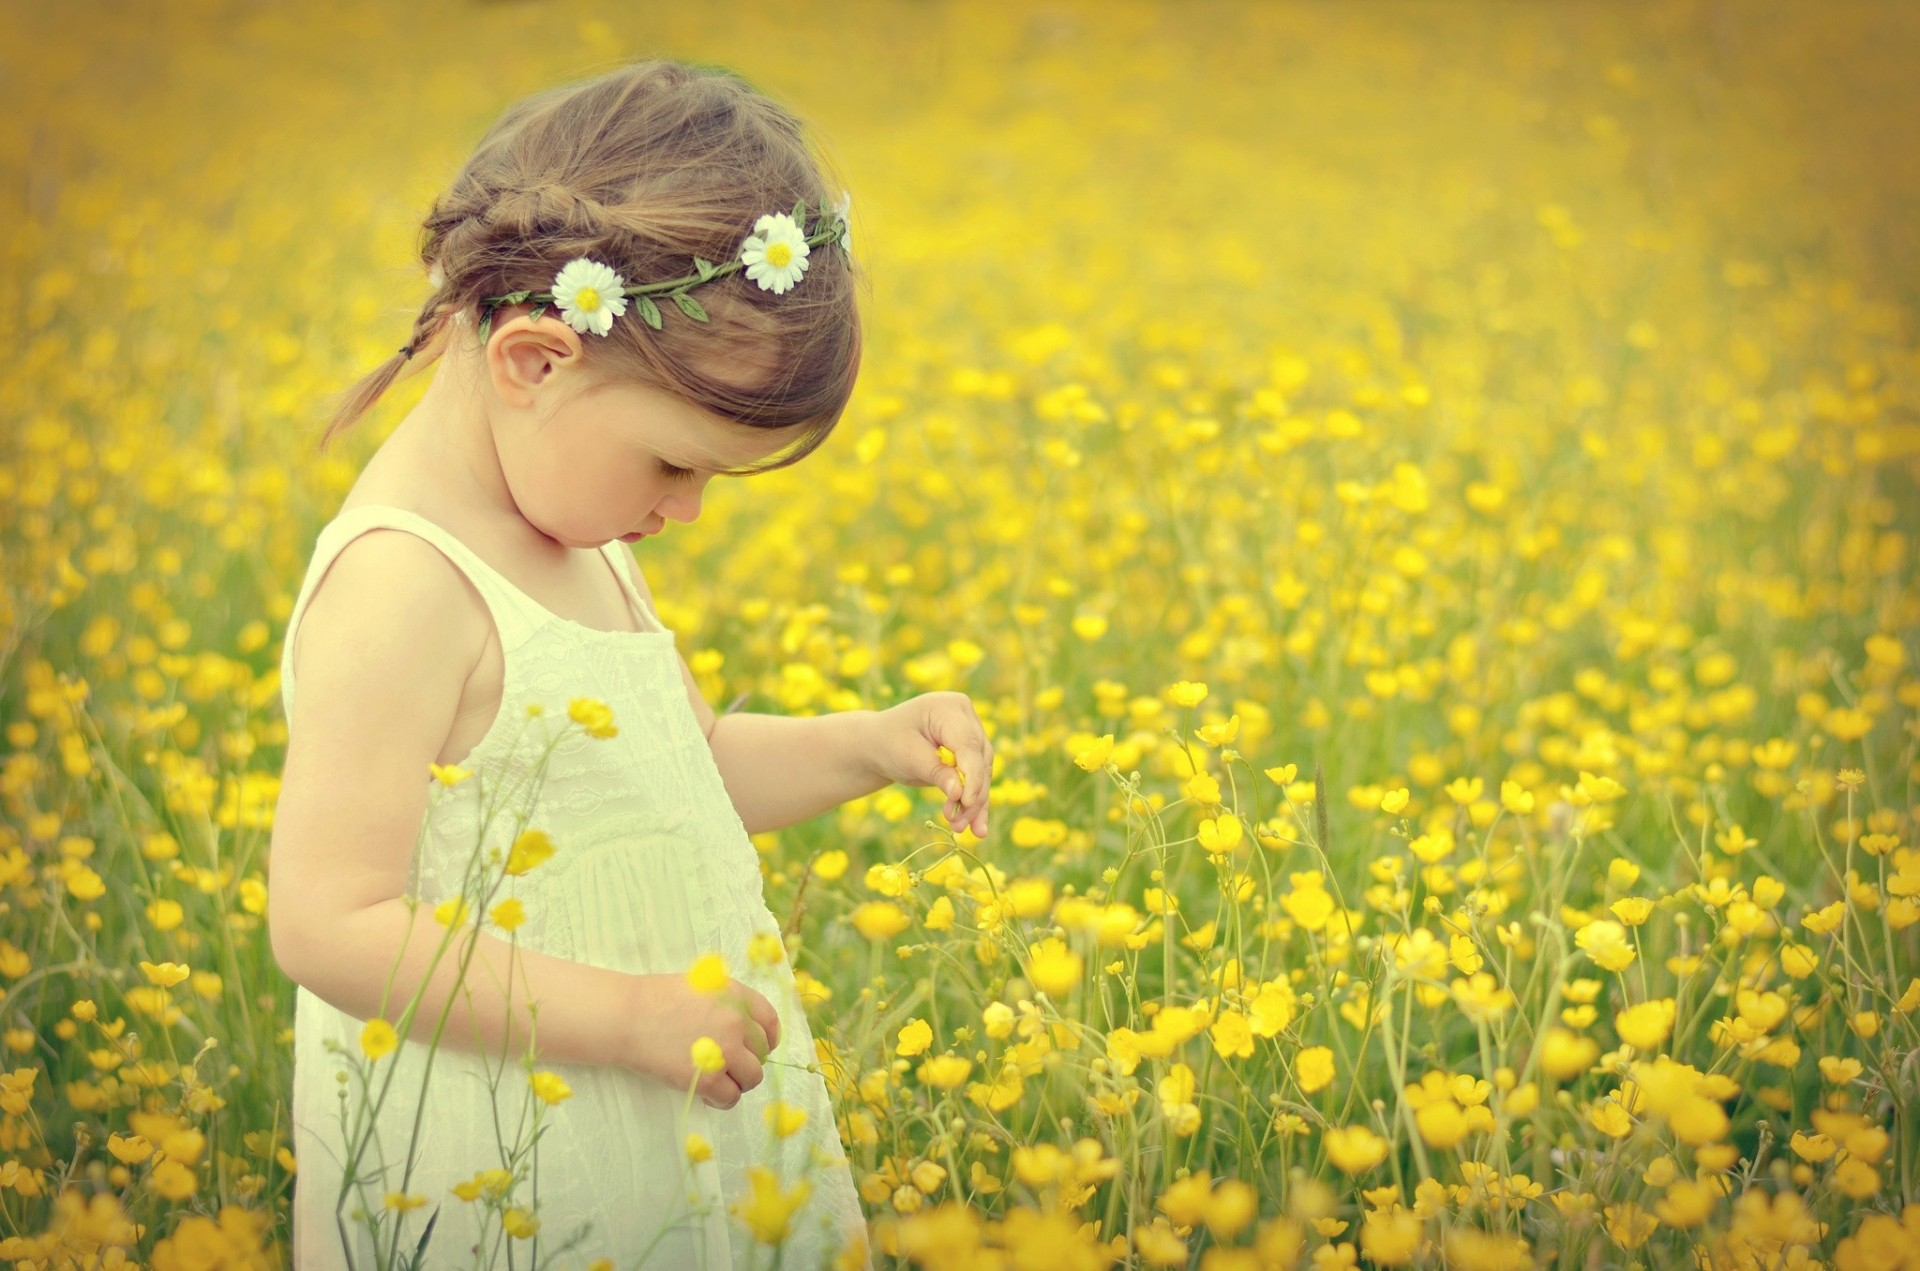 Girl Images, Pictures and Photos - Image Housing Pictures of flower girl